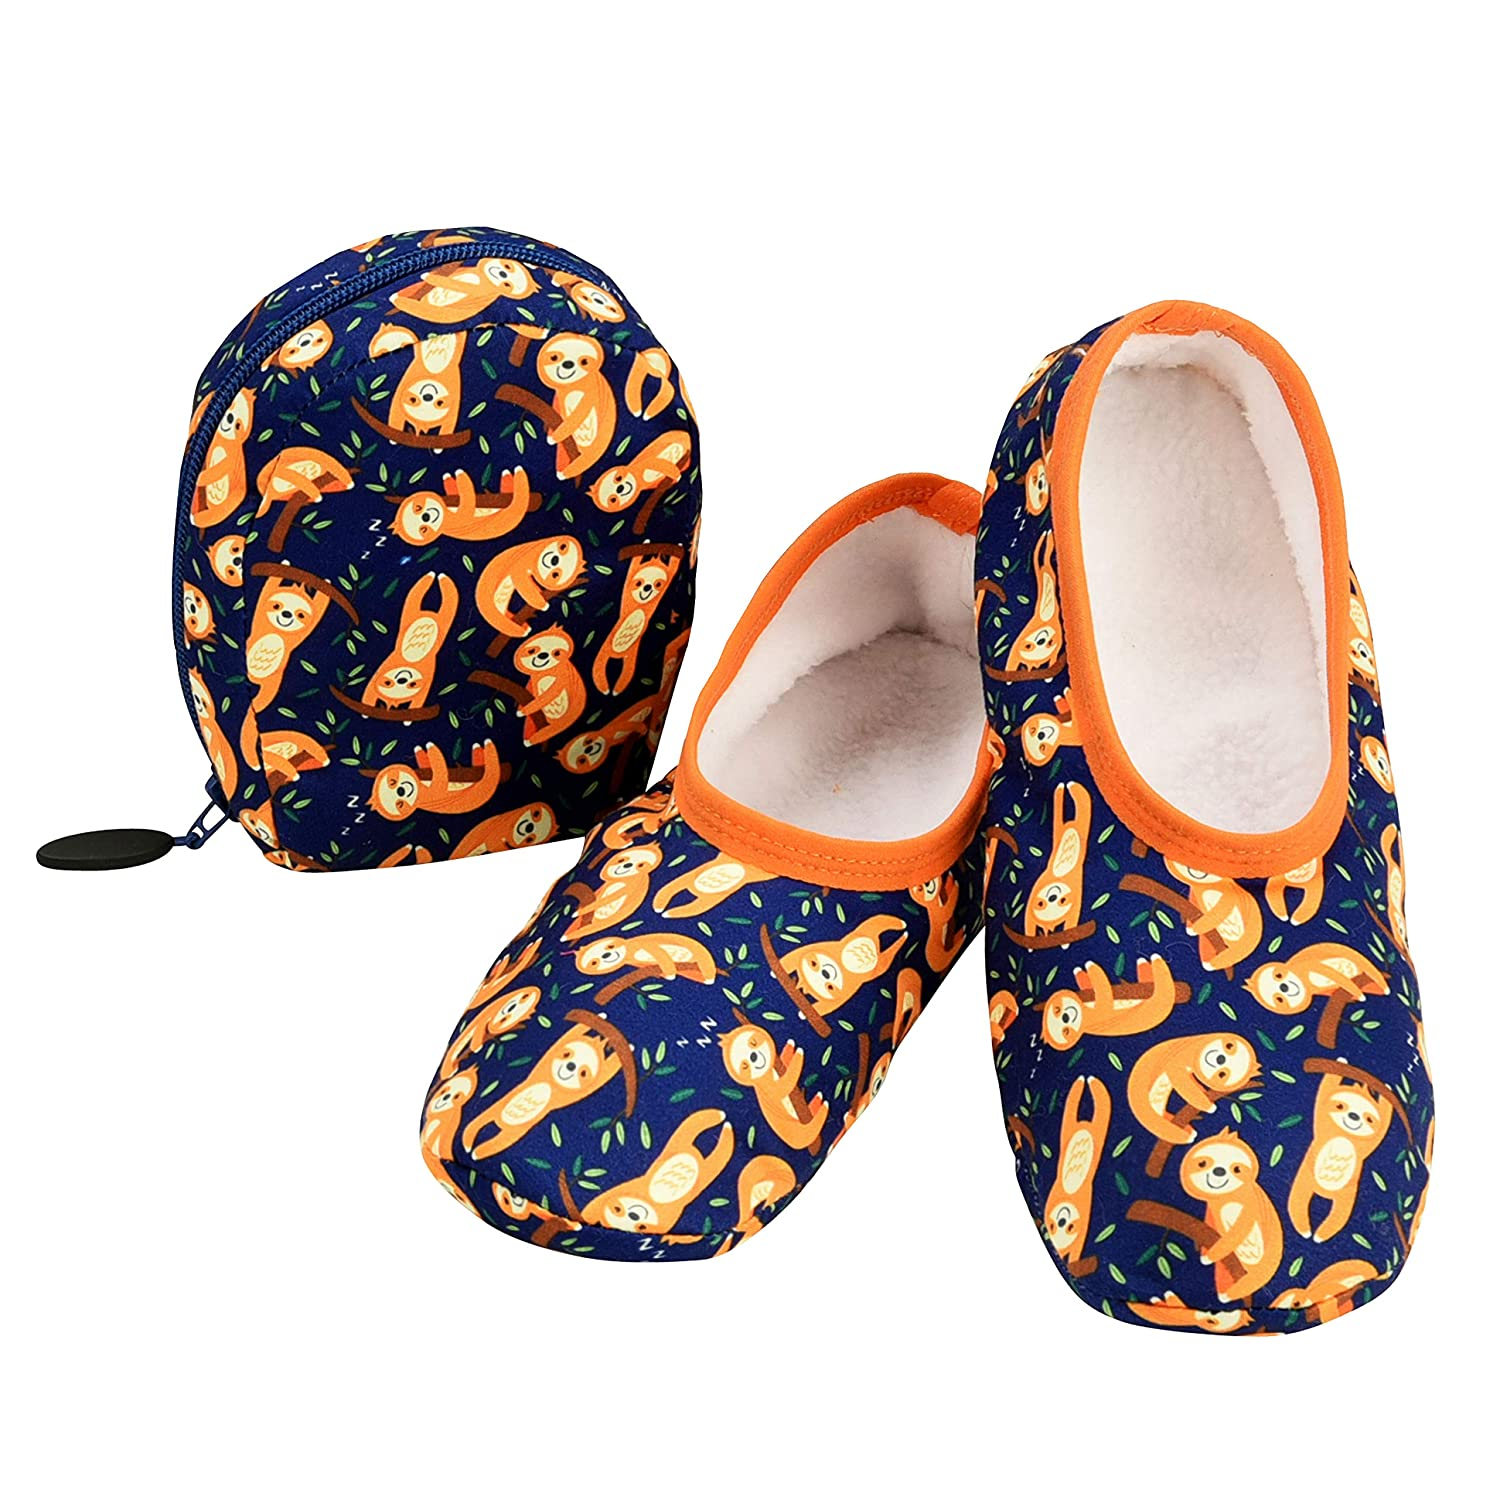 Purse Slippers for Women Snoozies Skinnies /& Travel Pouch Womens Slippers On The Go Travel Flats with Pouch